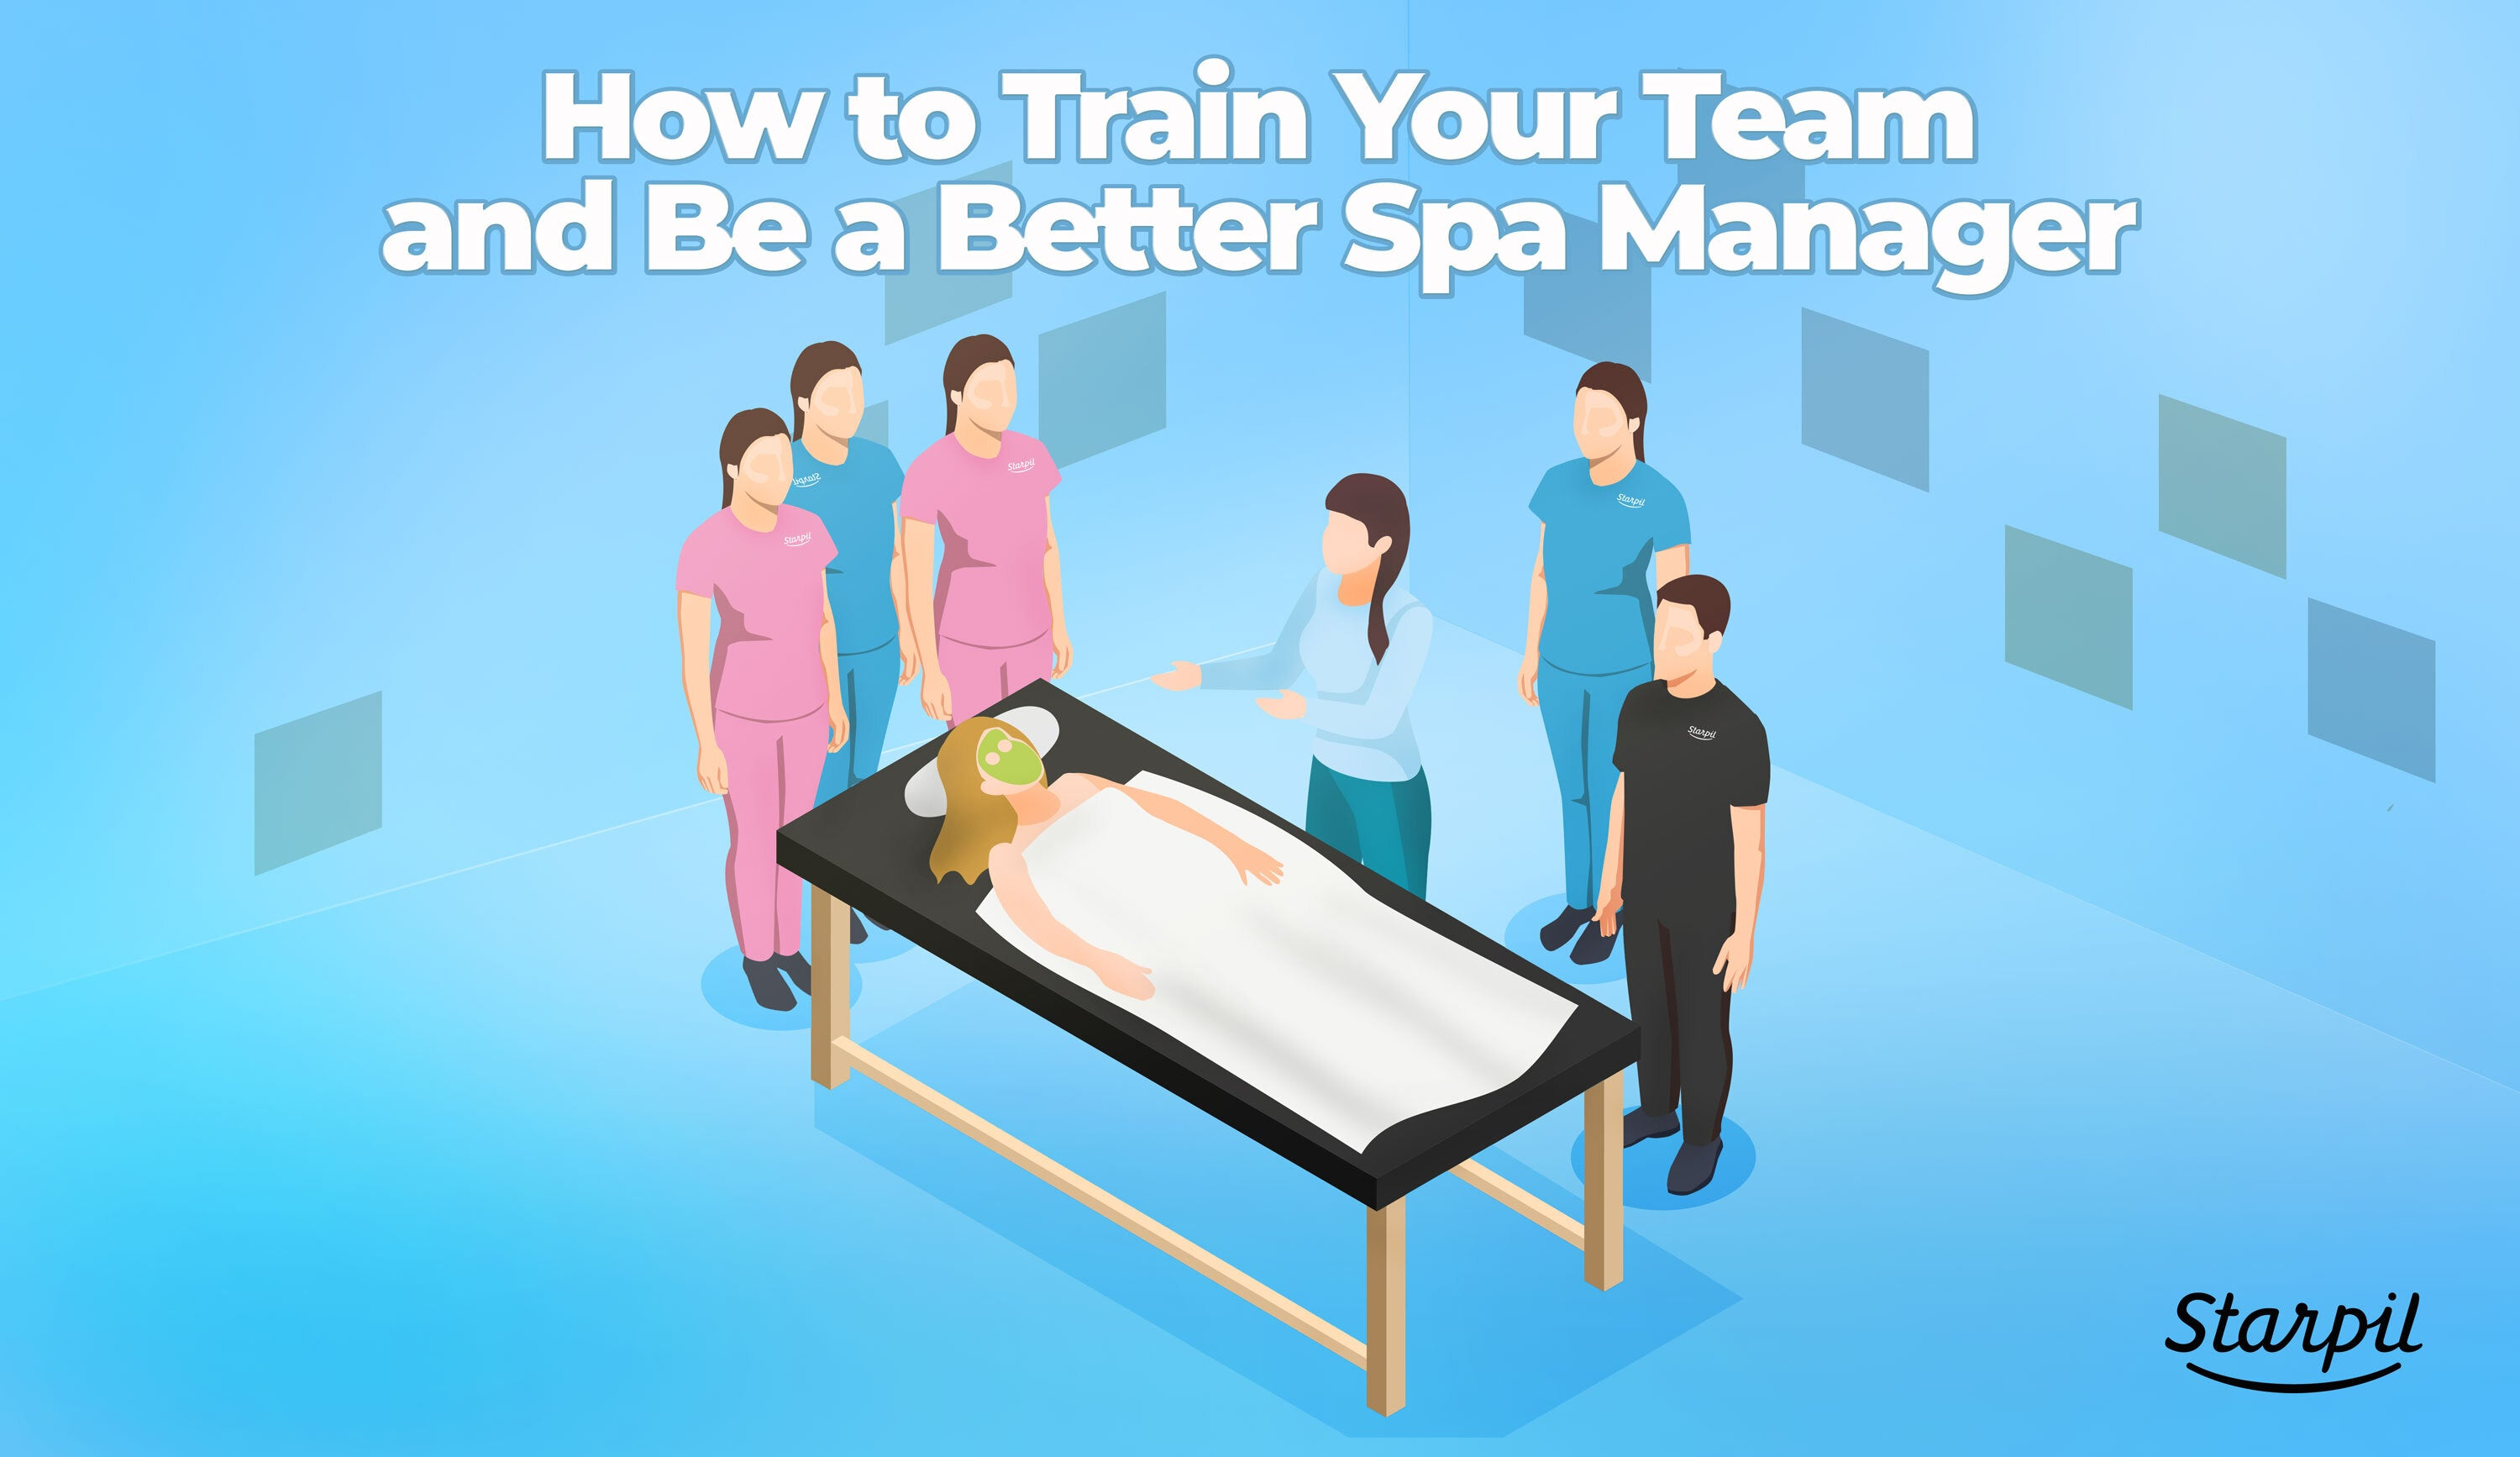 How to Train Your Team and Be a Better Spa Manager